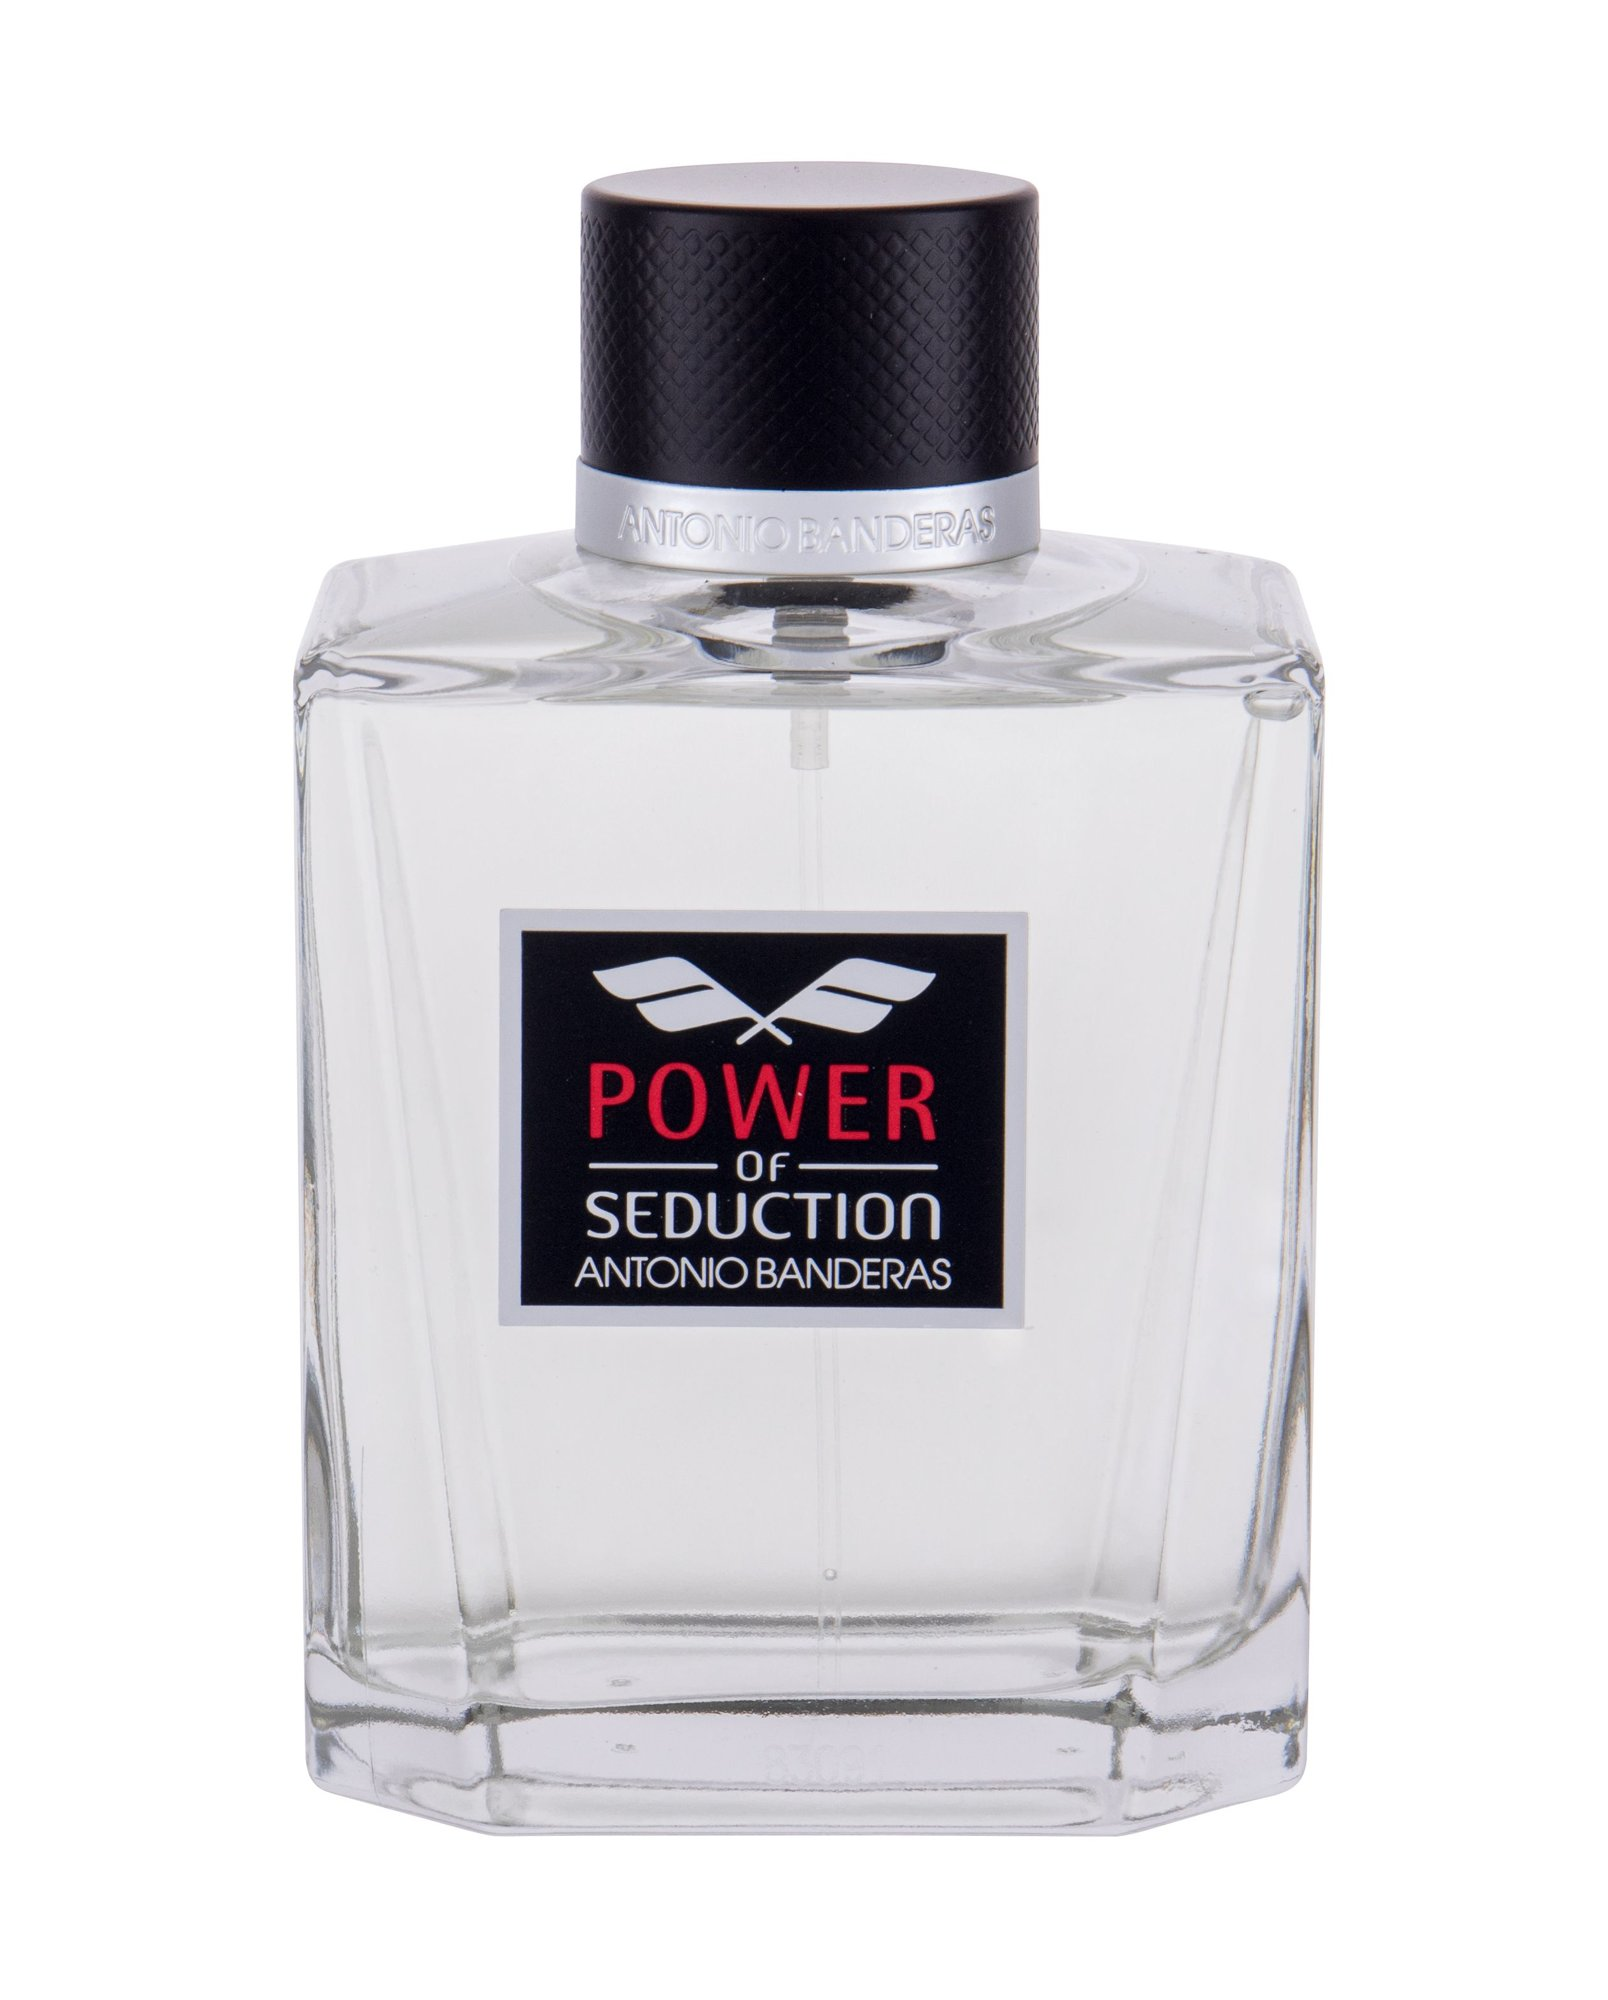 Antonio Banderas Power of Seduction  Toaletní voda, M, 200 ml